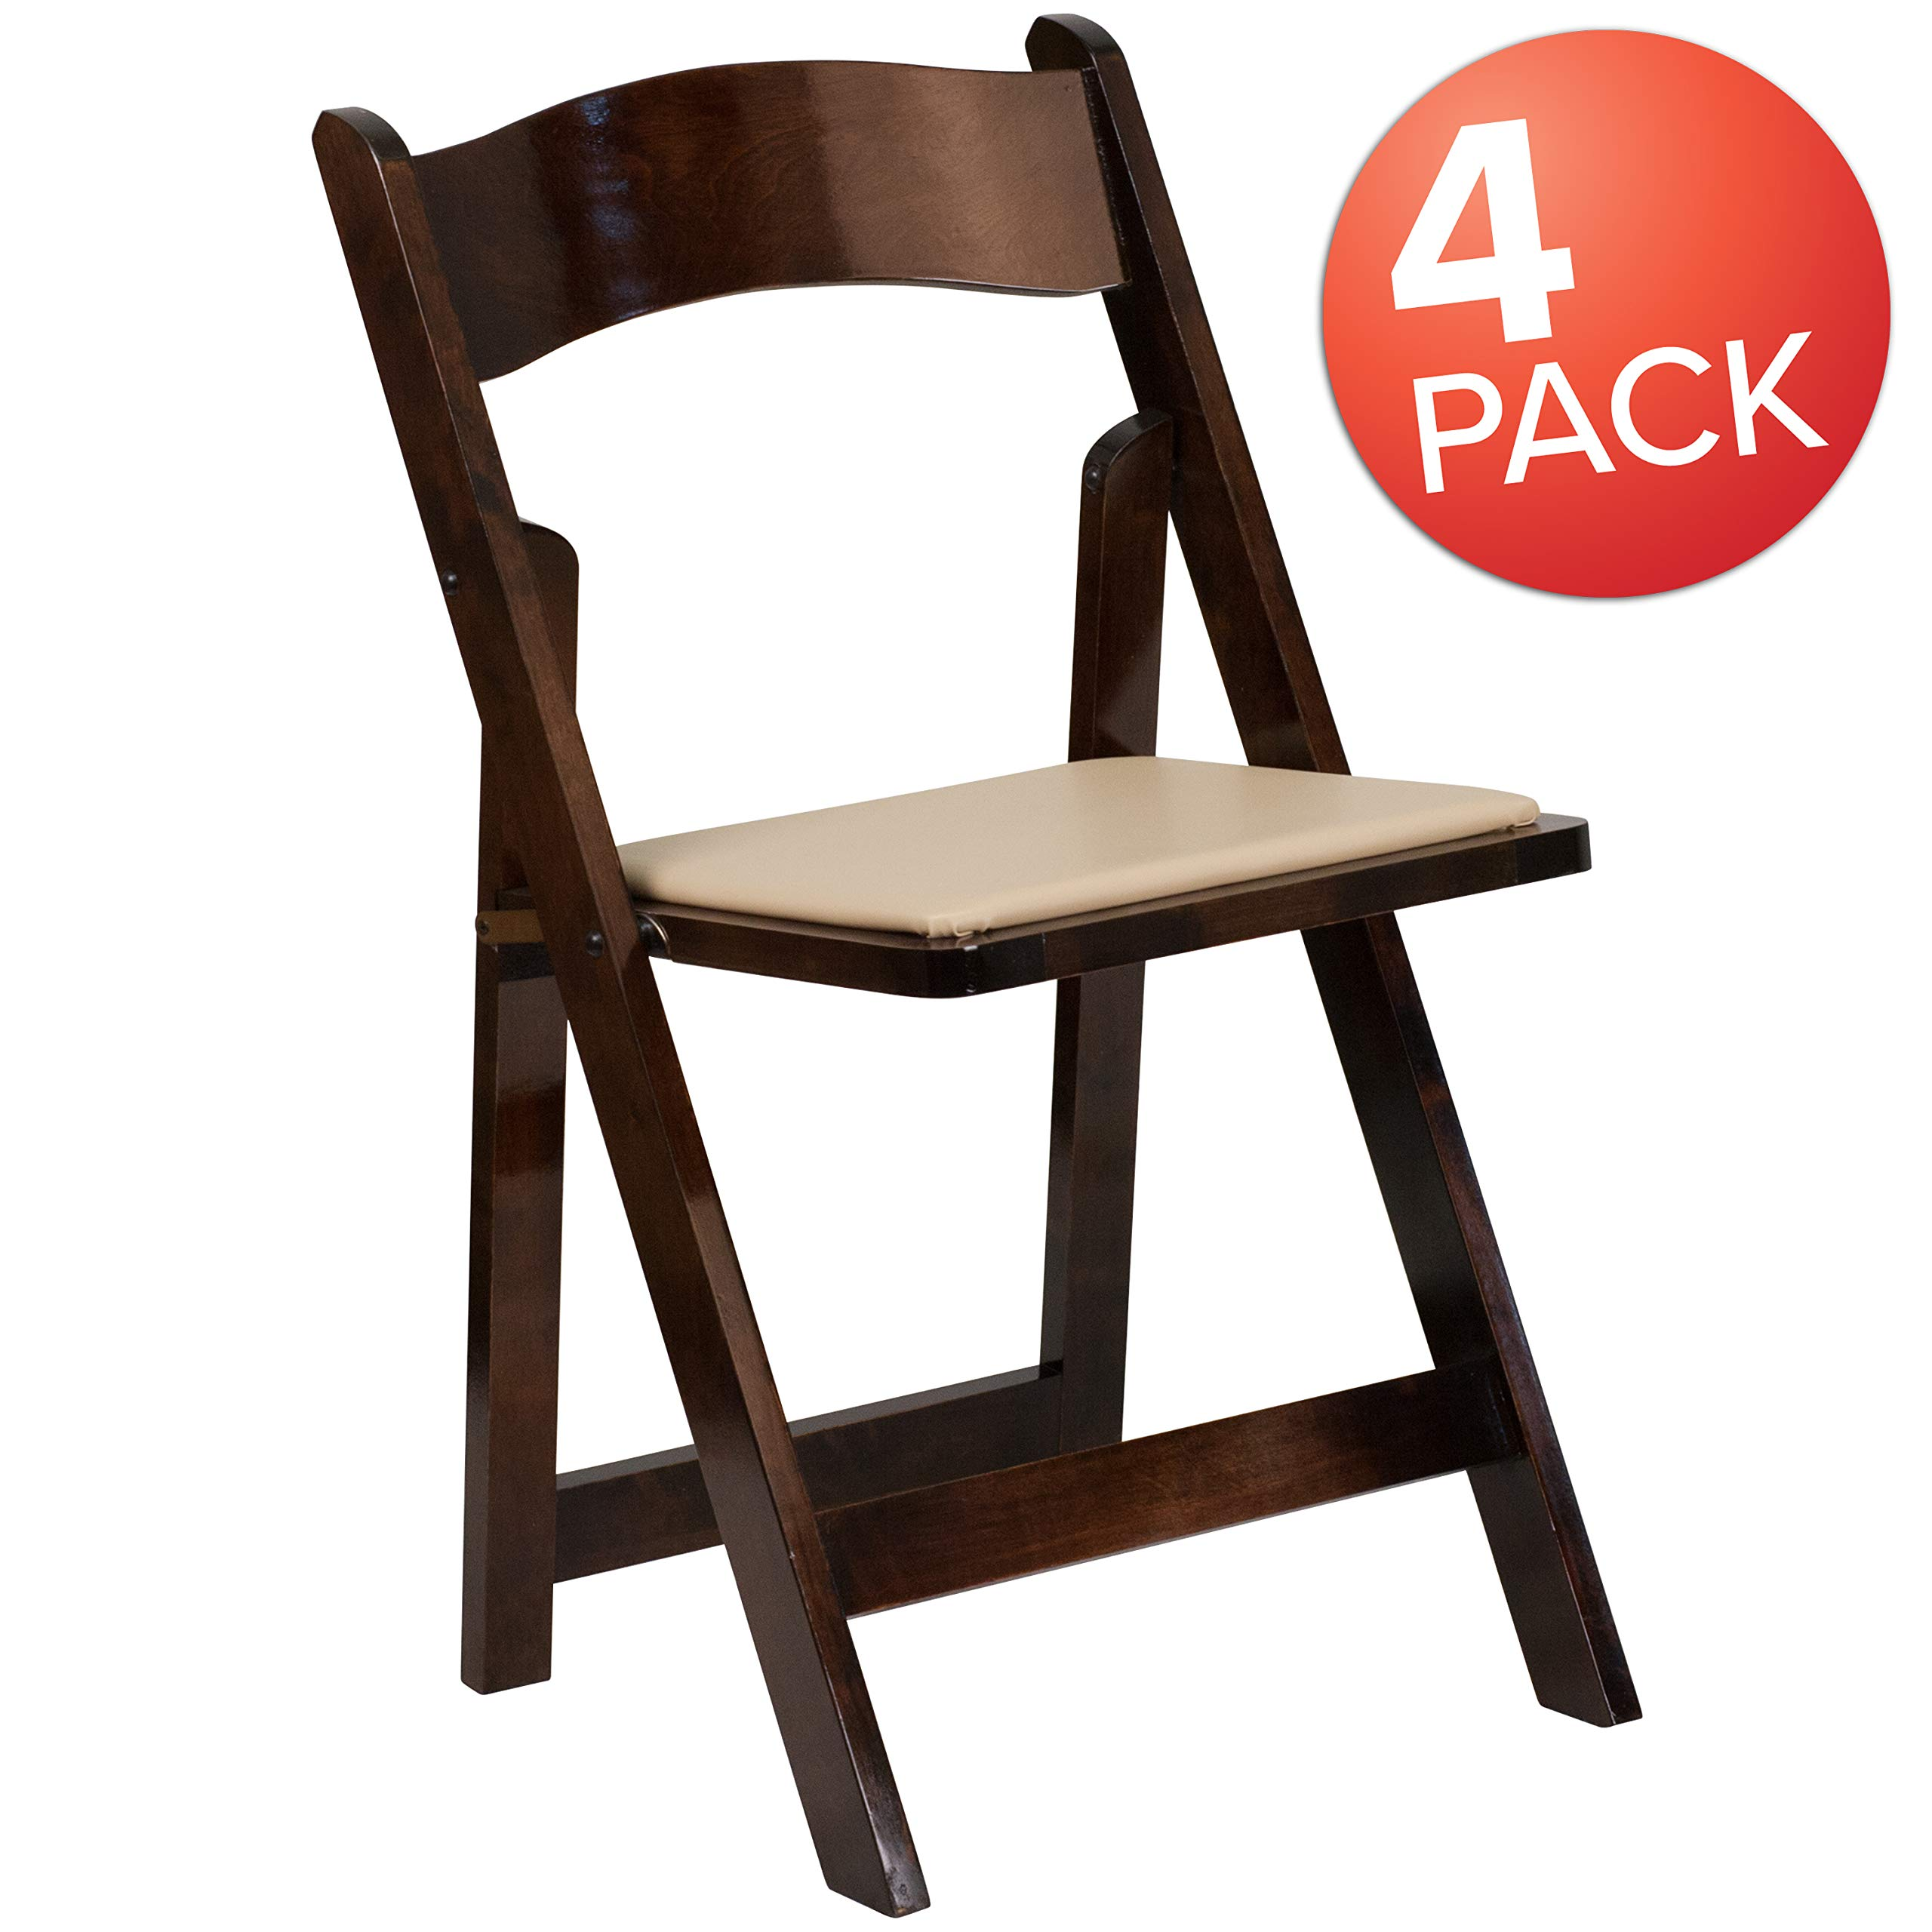 Flash Furniture 4 Pk. HERCULES Series Fruitwood Wood Folding Chair with Vinyl Padded Seat by Flash Furniture